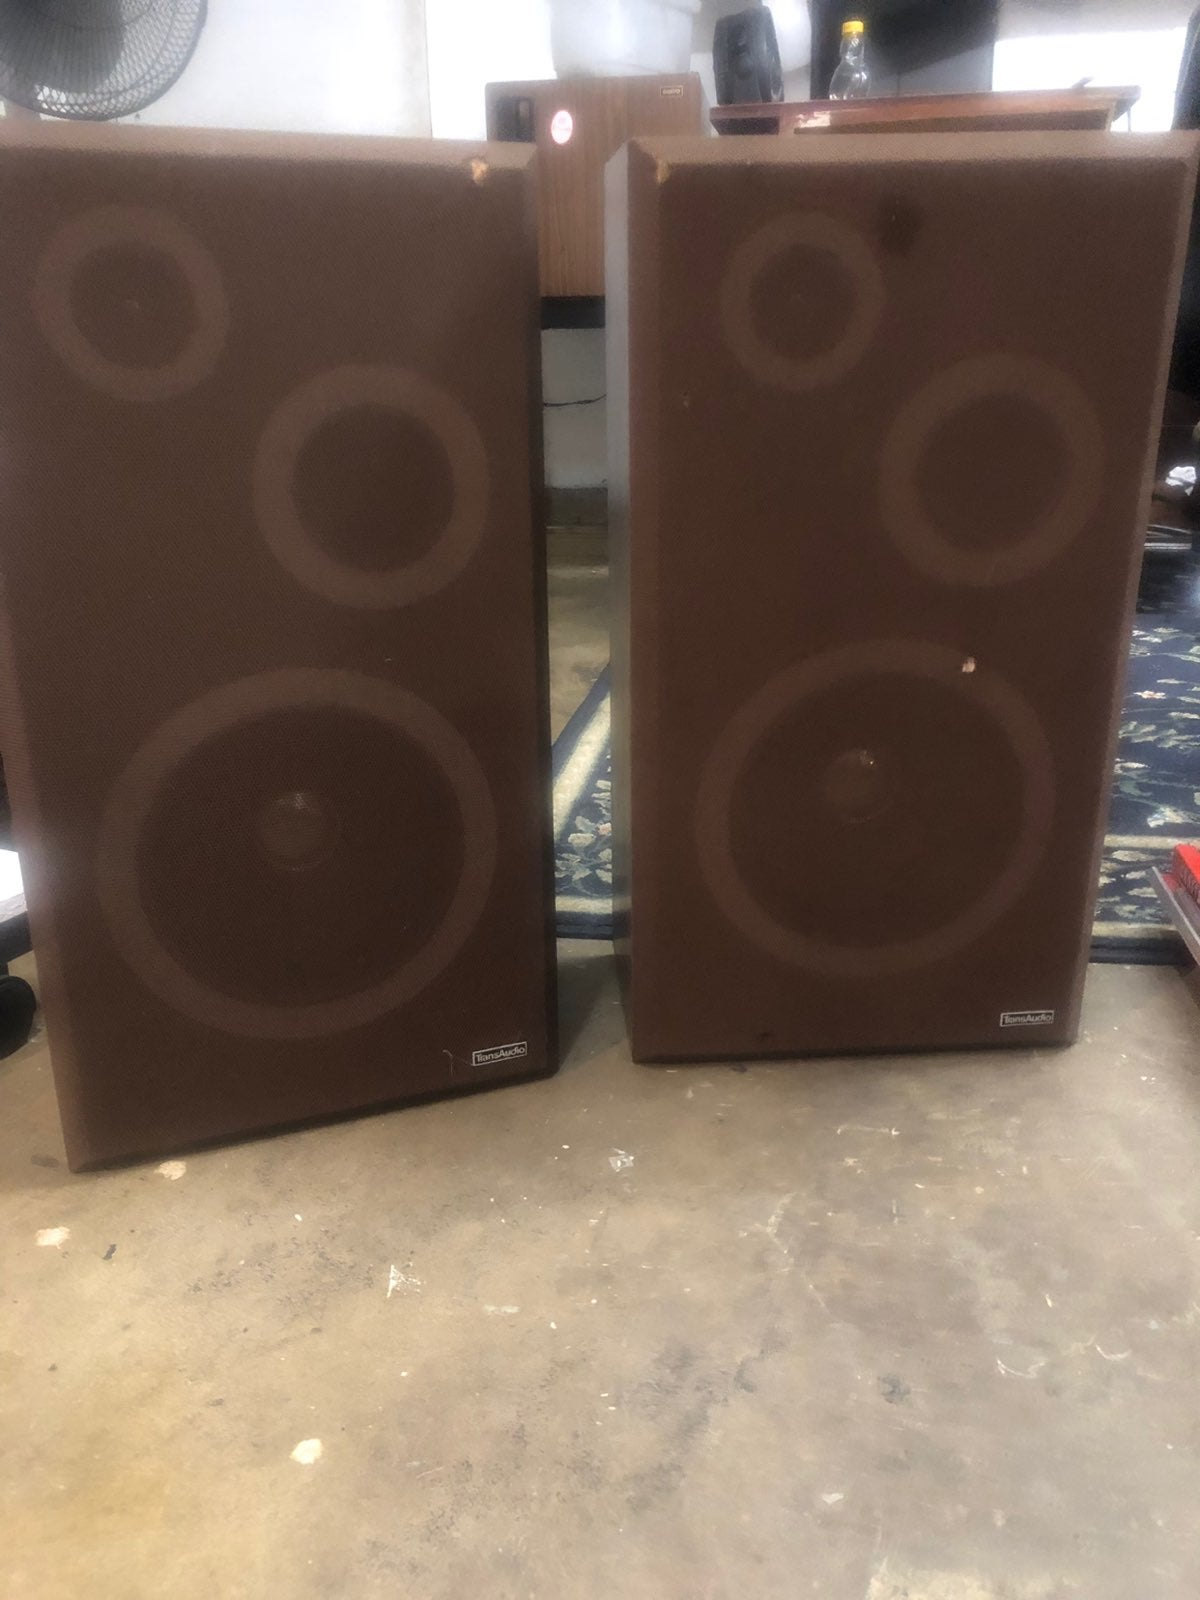 Vintage - Transaudio home floor speakers